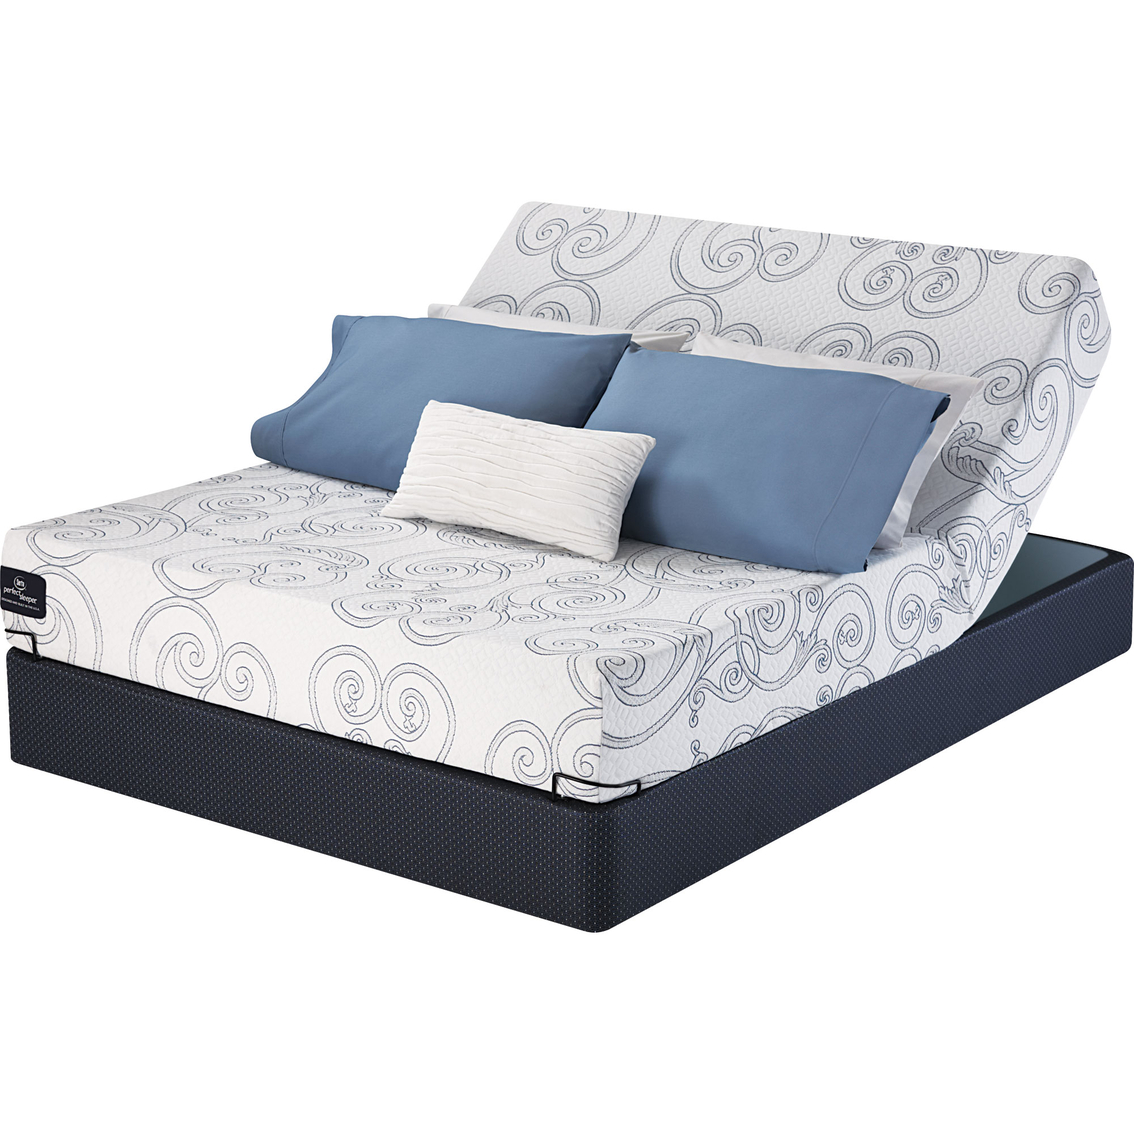 Serta perfect sleeper leadership memory foam firm mattress and adjustable base set mattresses Memory foam mattress set